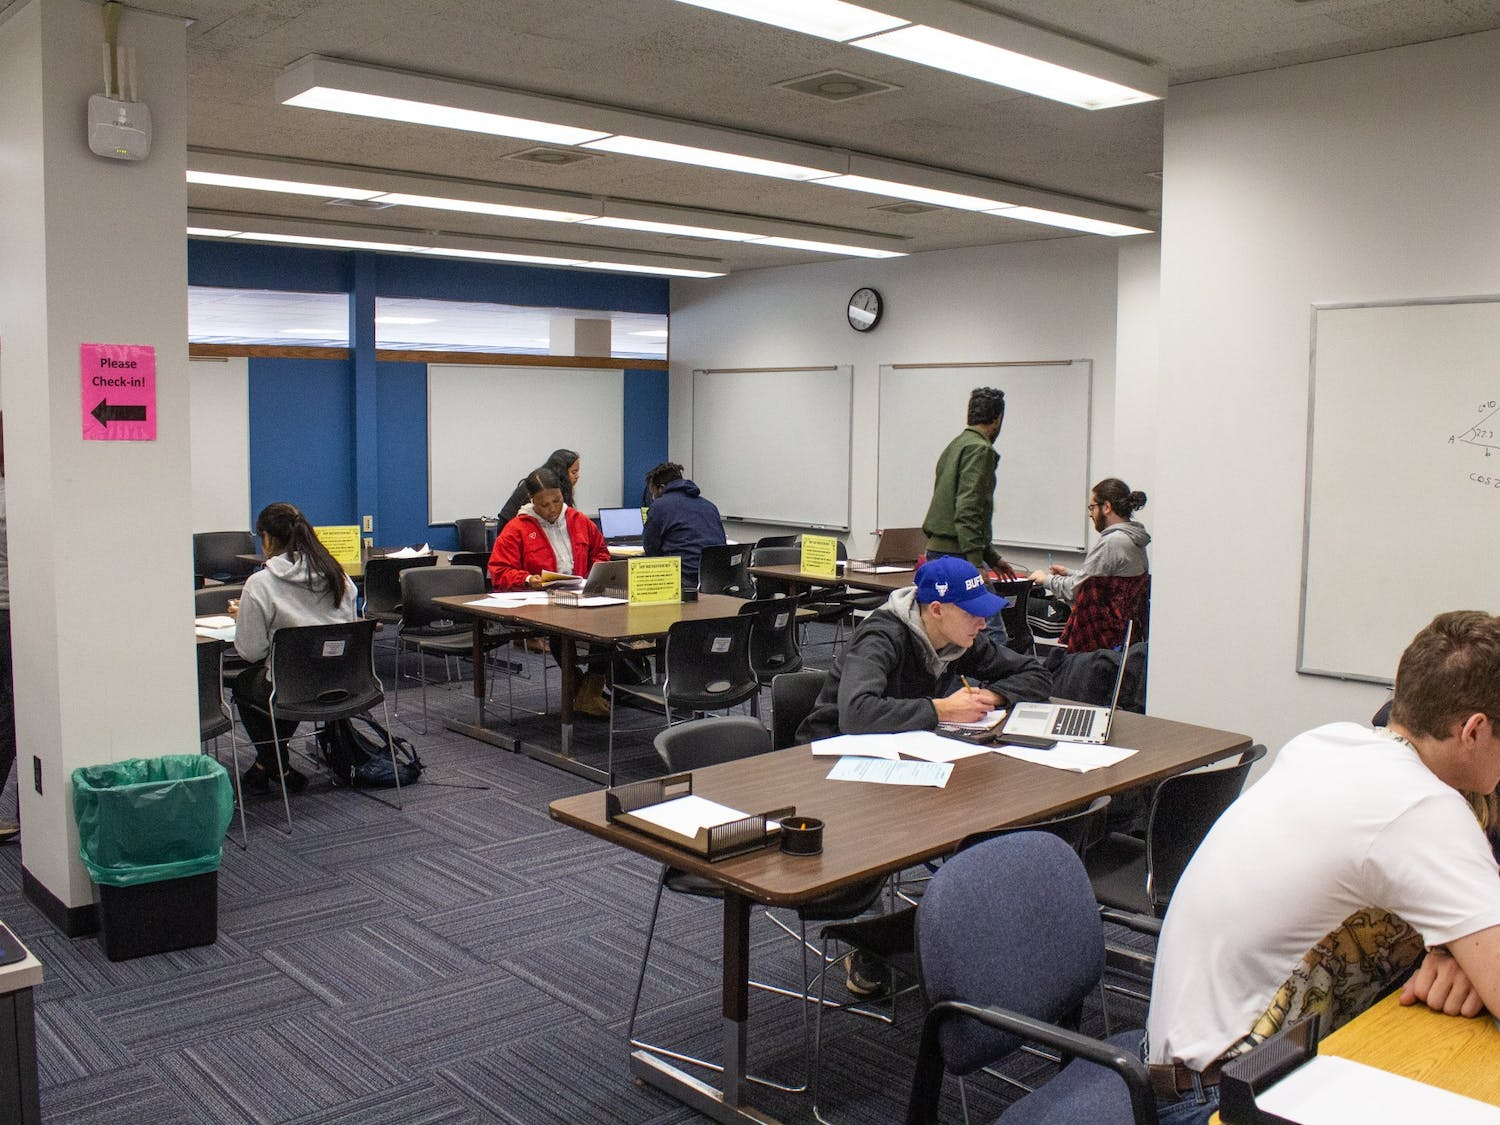 UB students receive math tutoring for free in the Math Place located in 211 Baldy Hall on Tuesday.